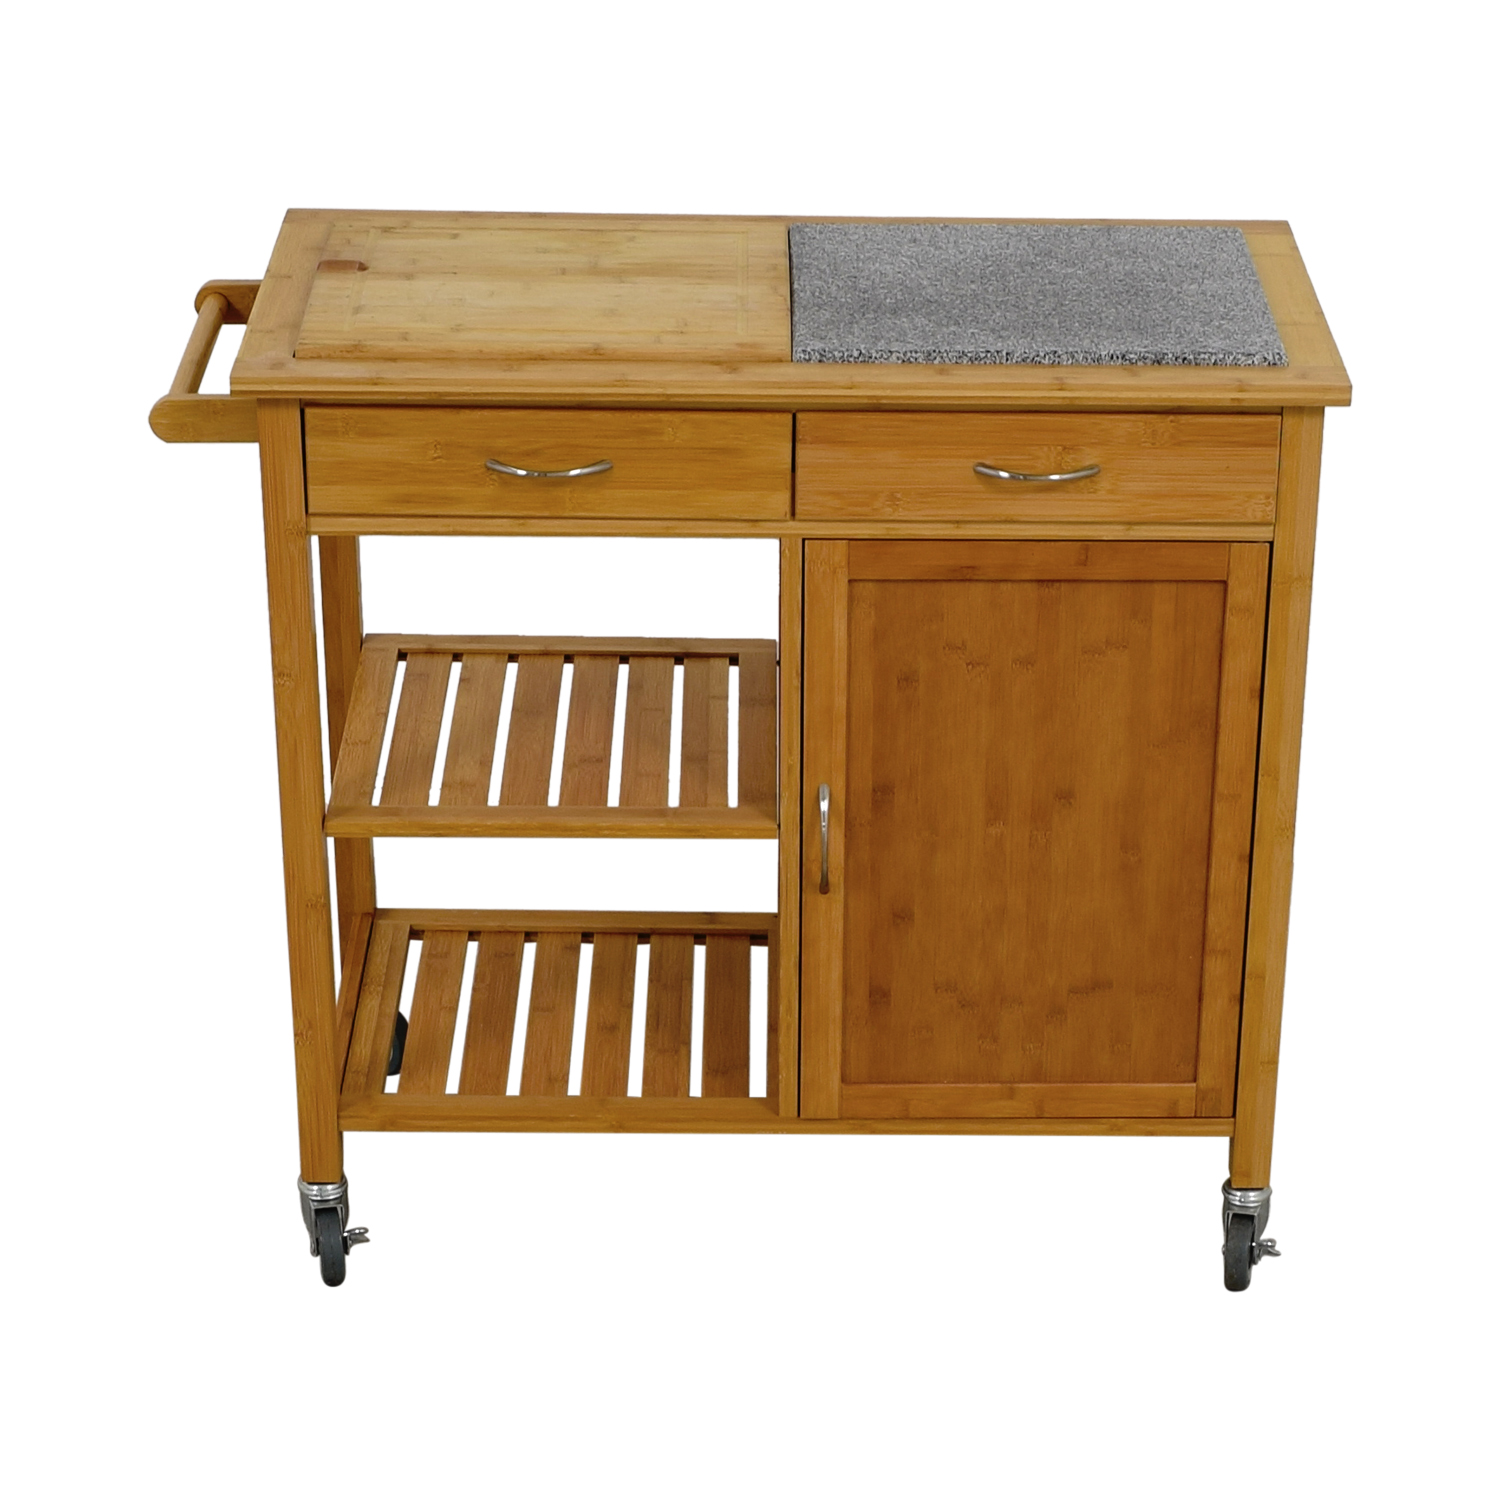 48 Off Linon Home Linon Home Bamboo Rolling Kitchen